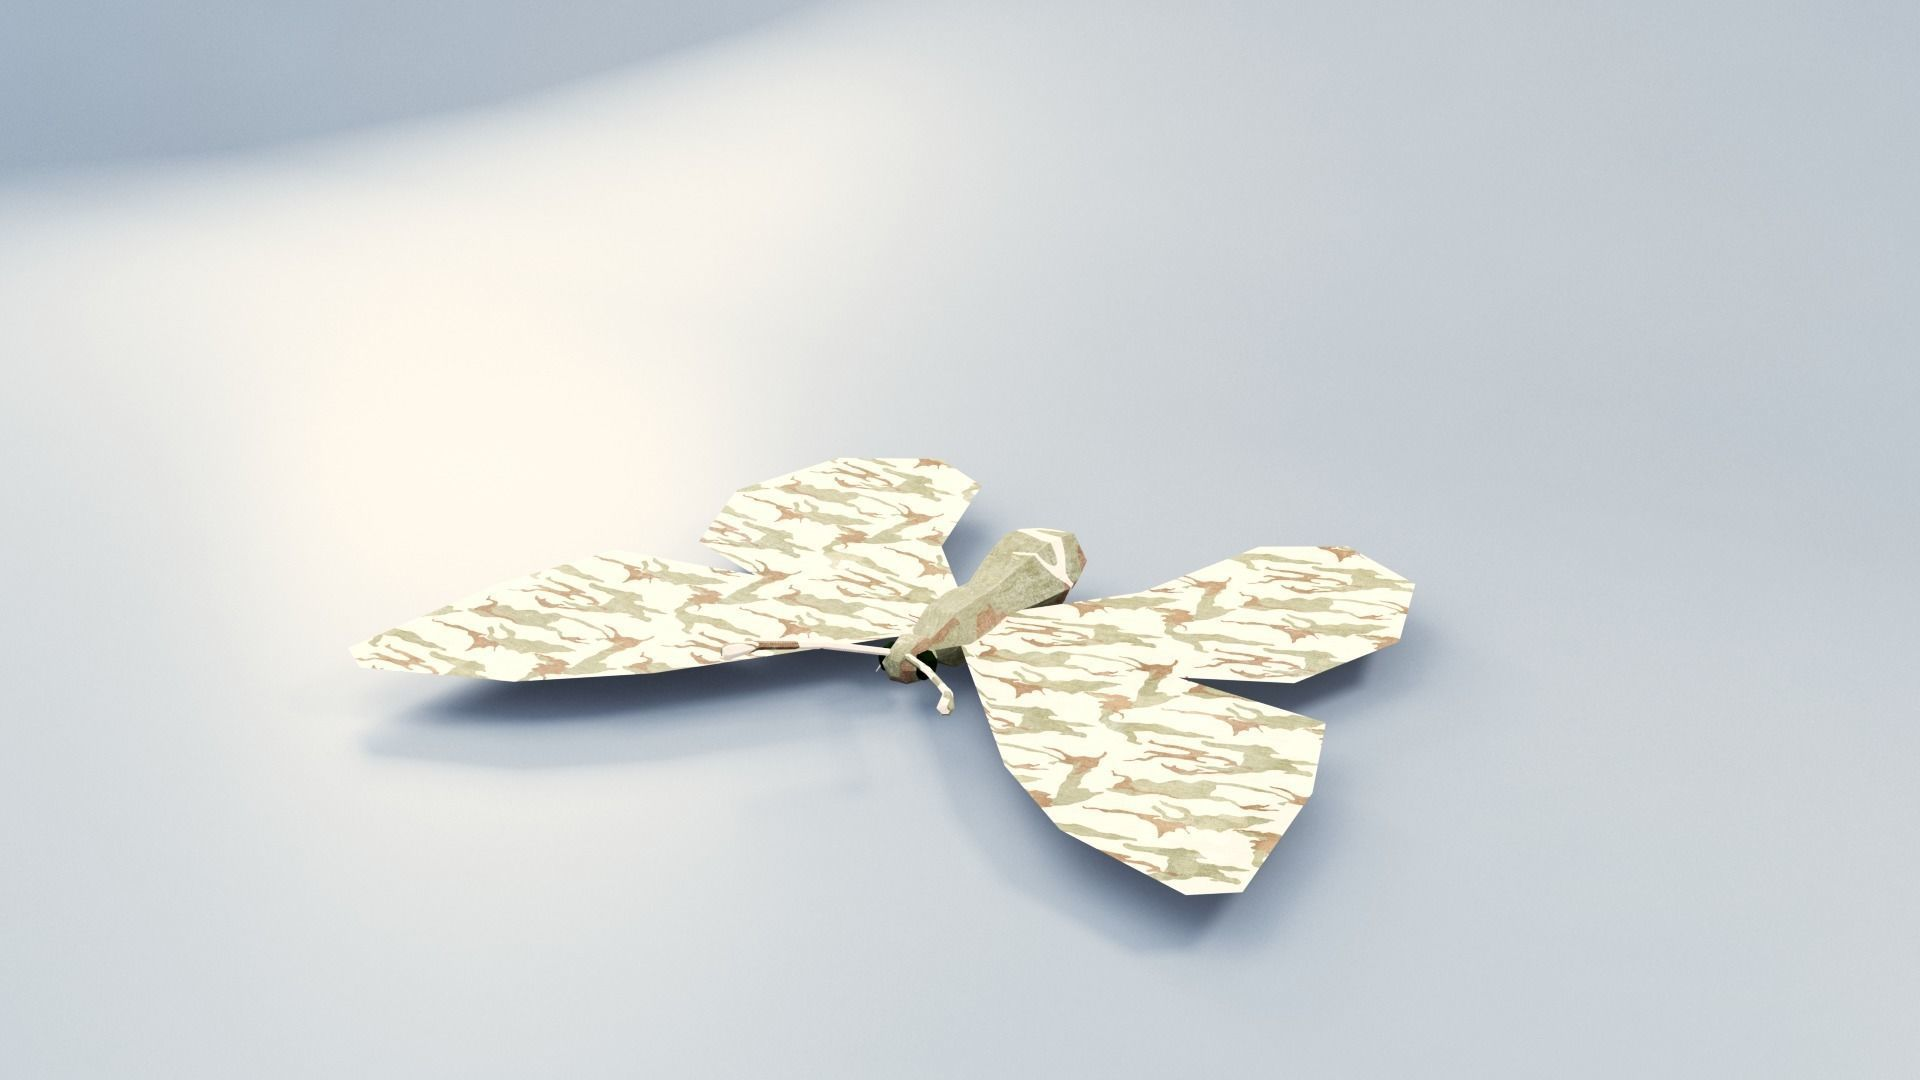 Abstract LowPoly PBR ButterFly